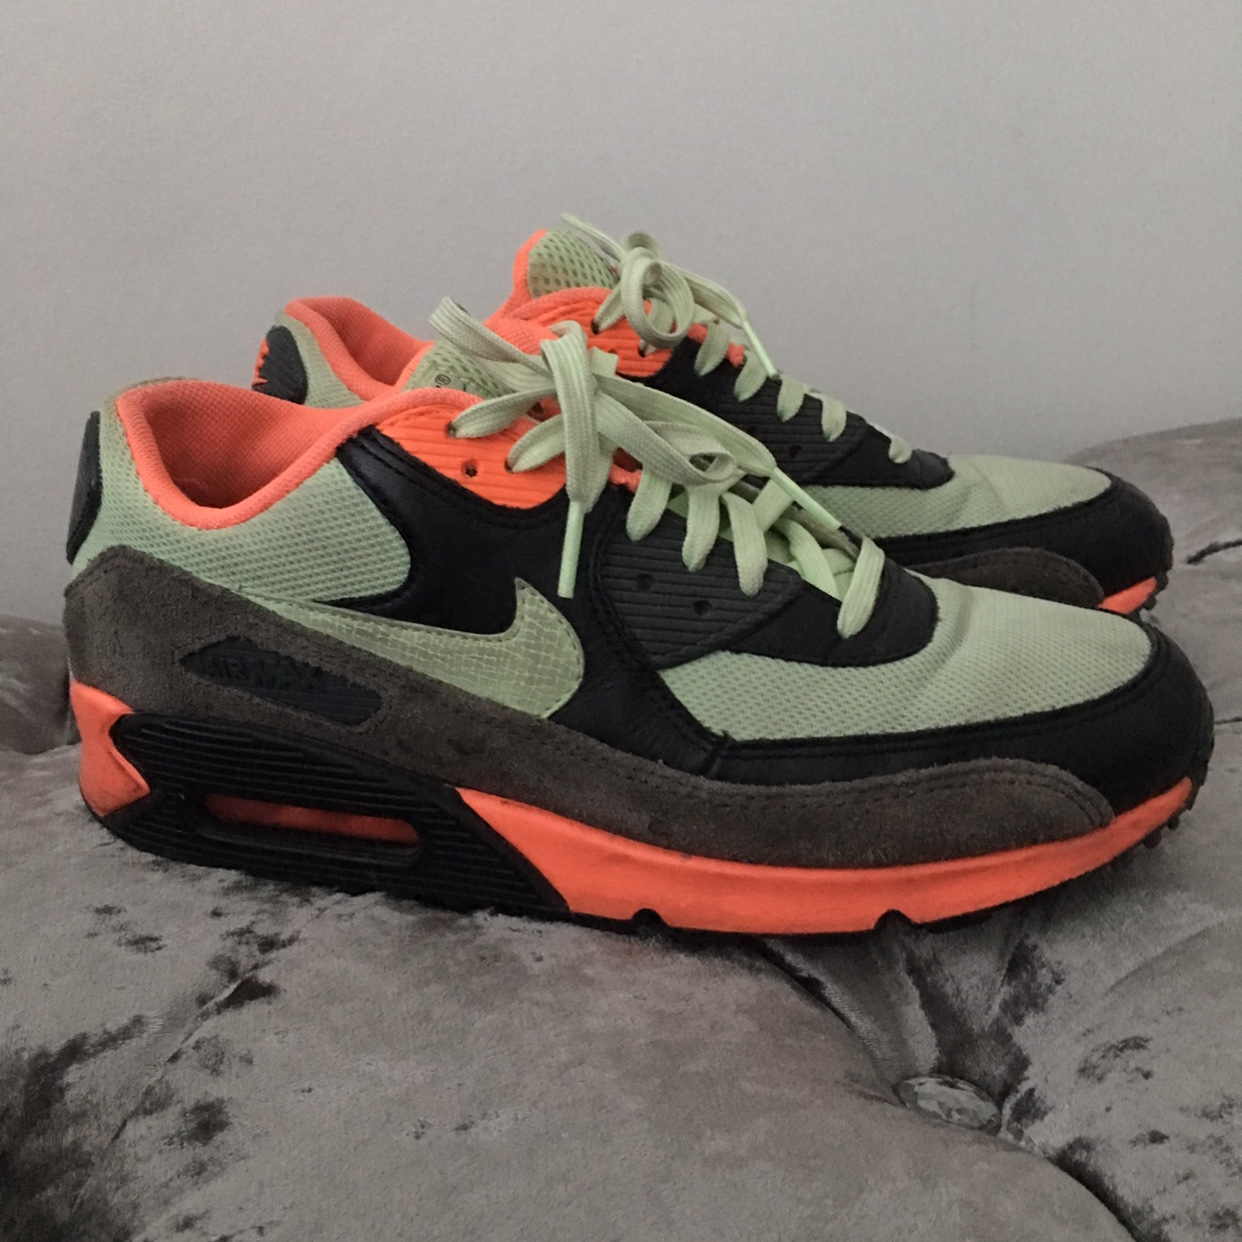 new style c16bb 36a84 Nike air max 90 8.5UK Limited edition Brought from... - Depop